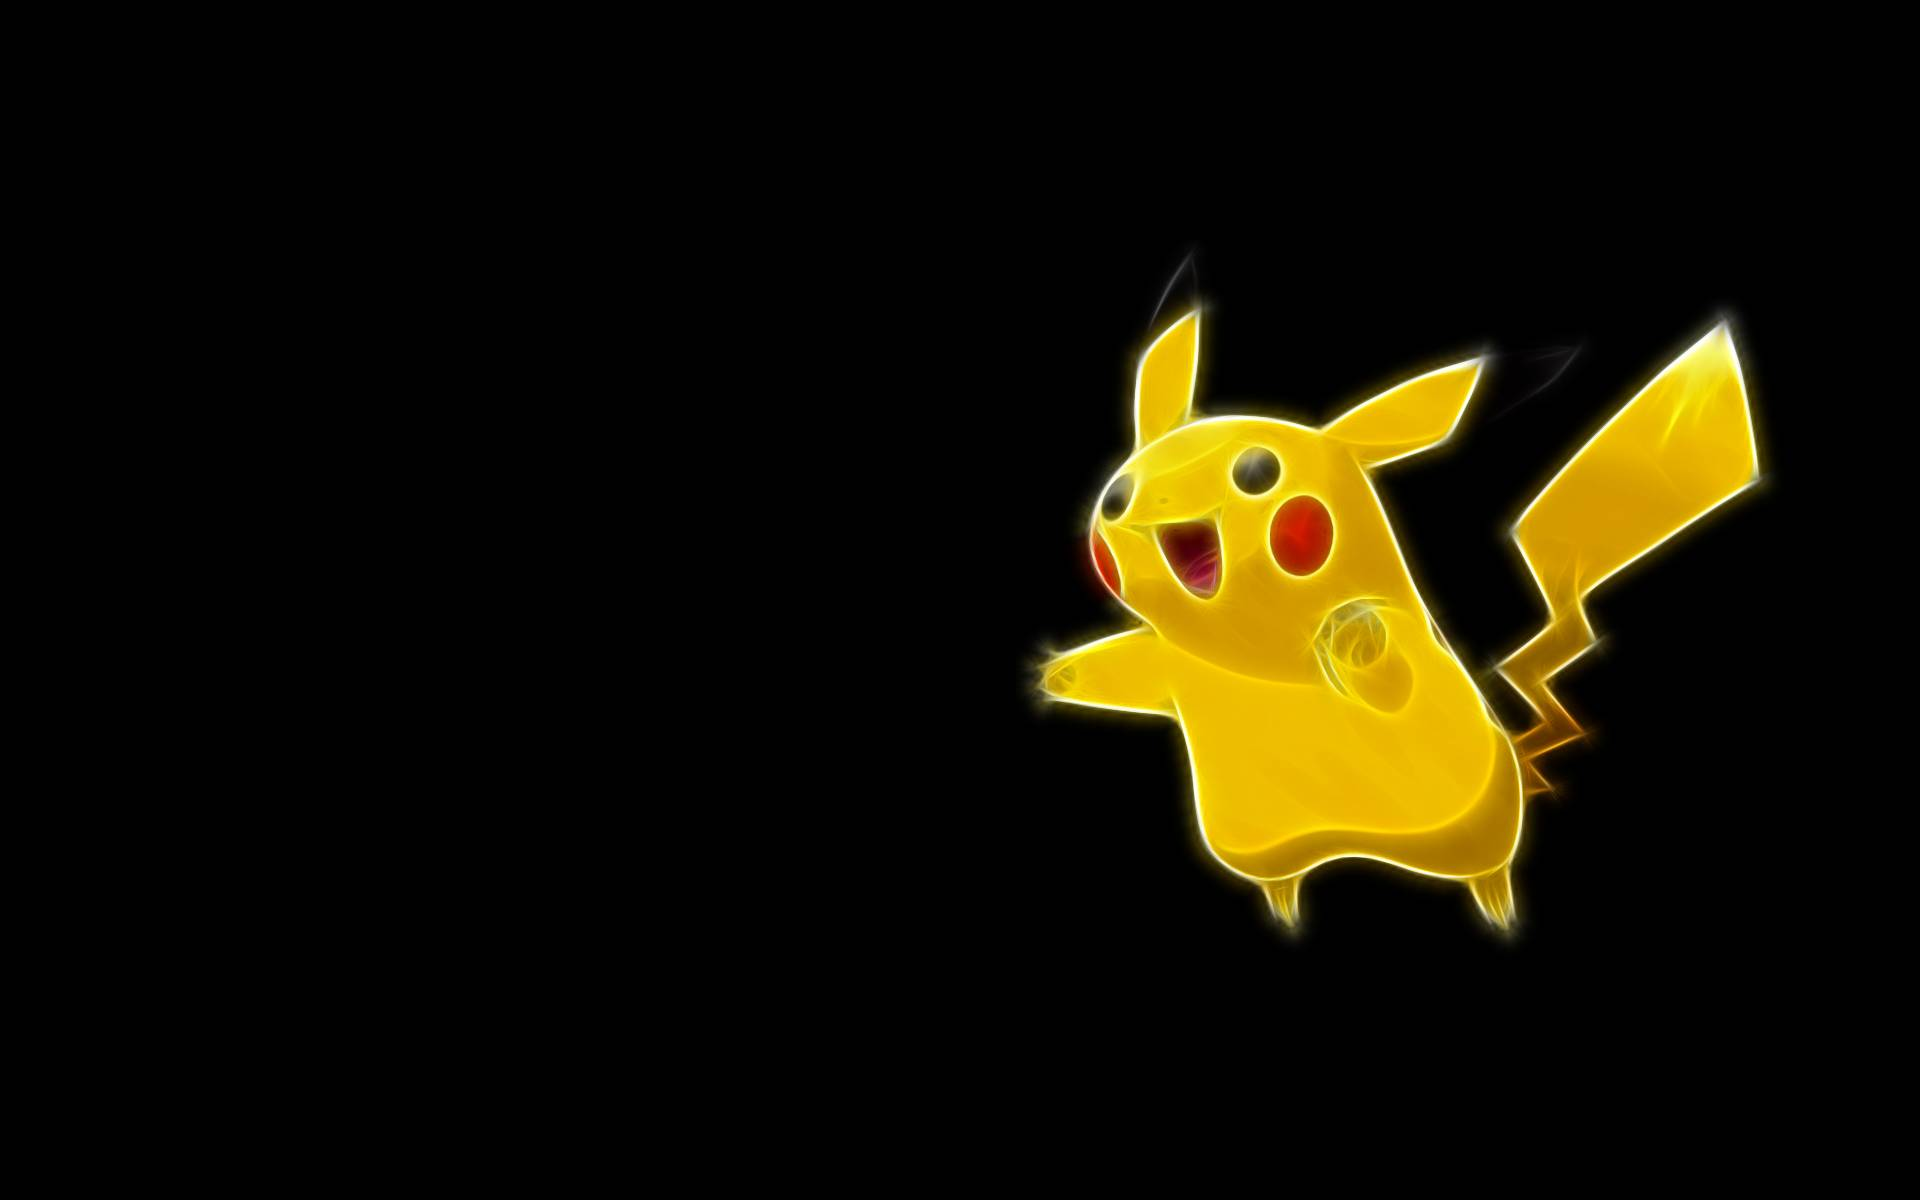 Pokemon Black Pikachu 1920x1200